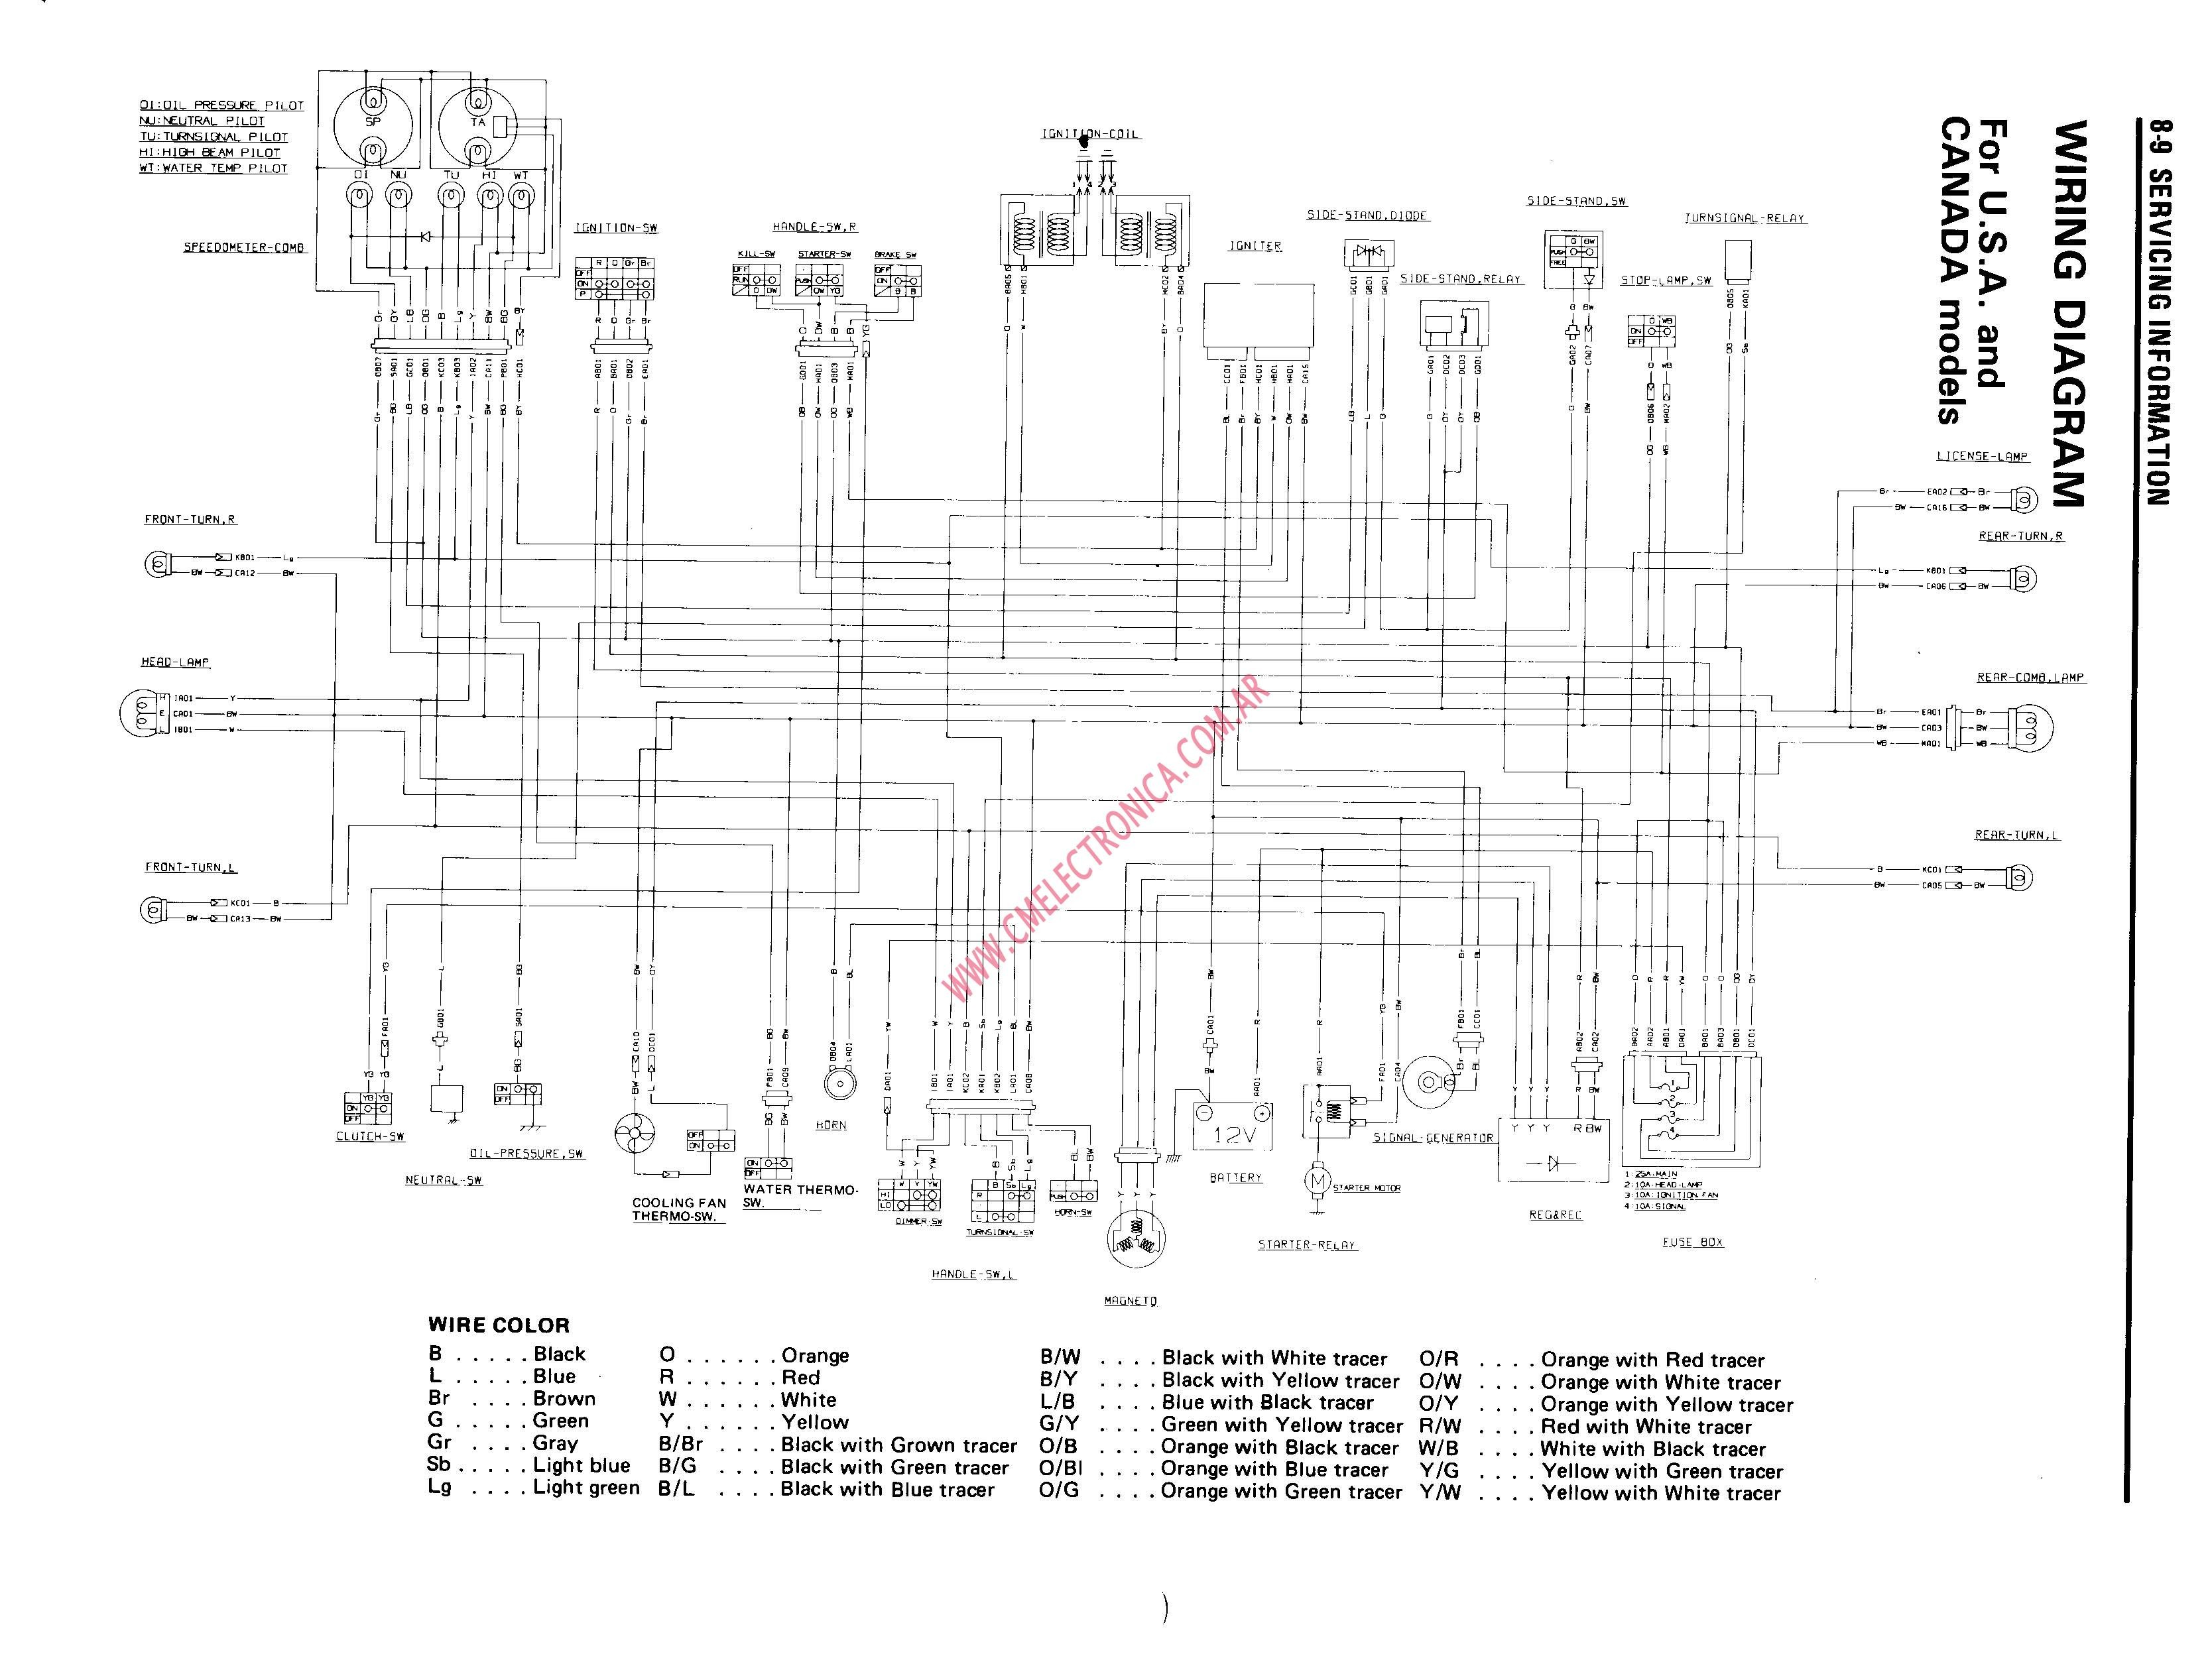 Xs1100 Wiring Diagram Free Download Wiring Diagram | Xwiaw 79 yamaha ...